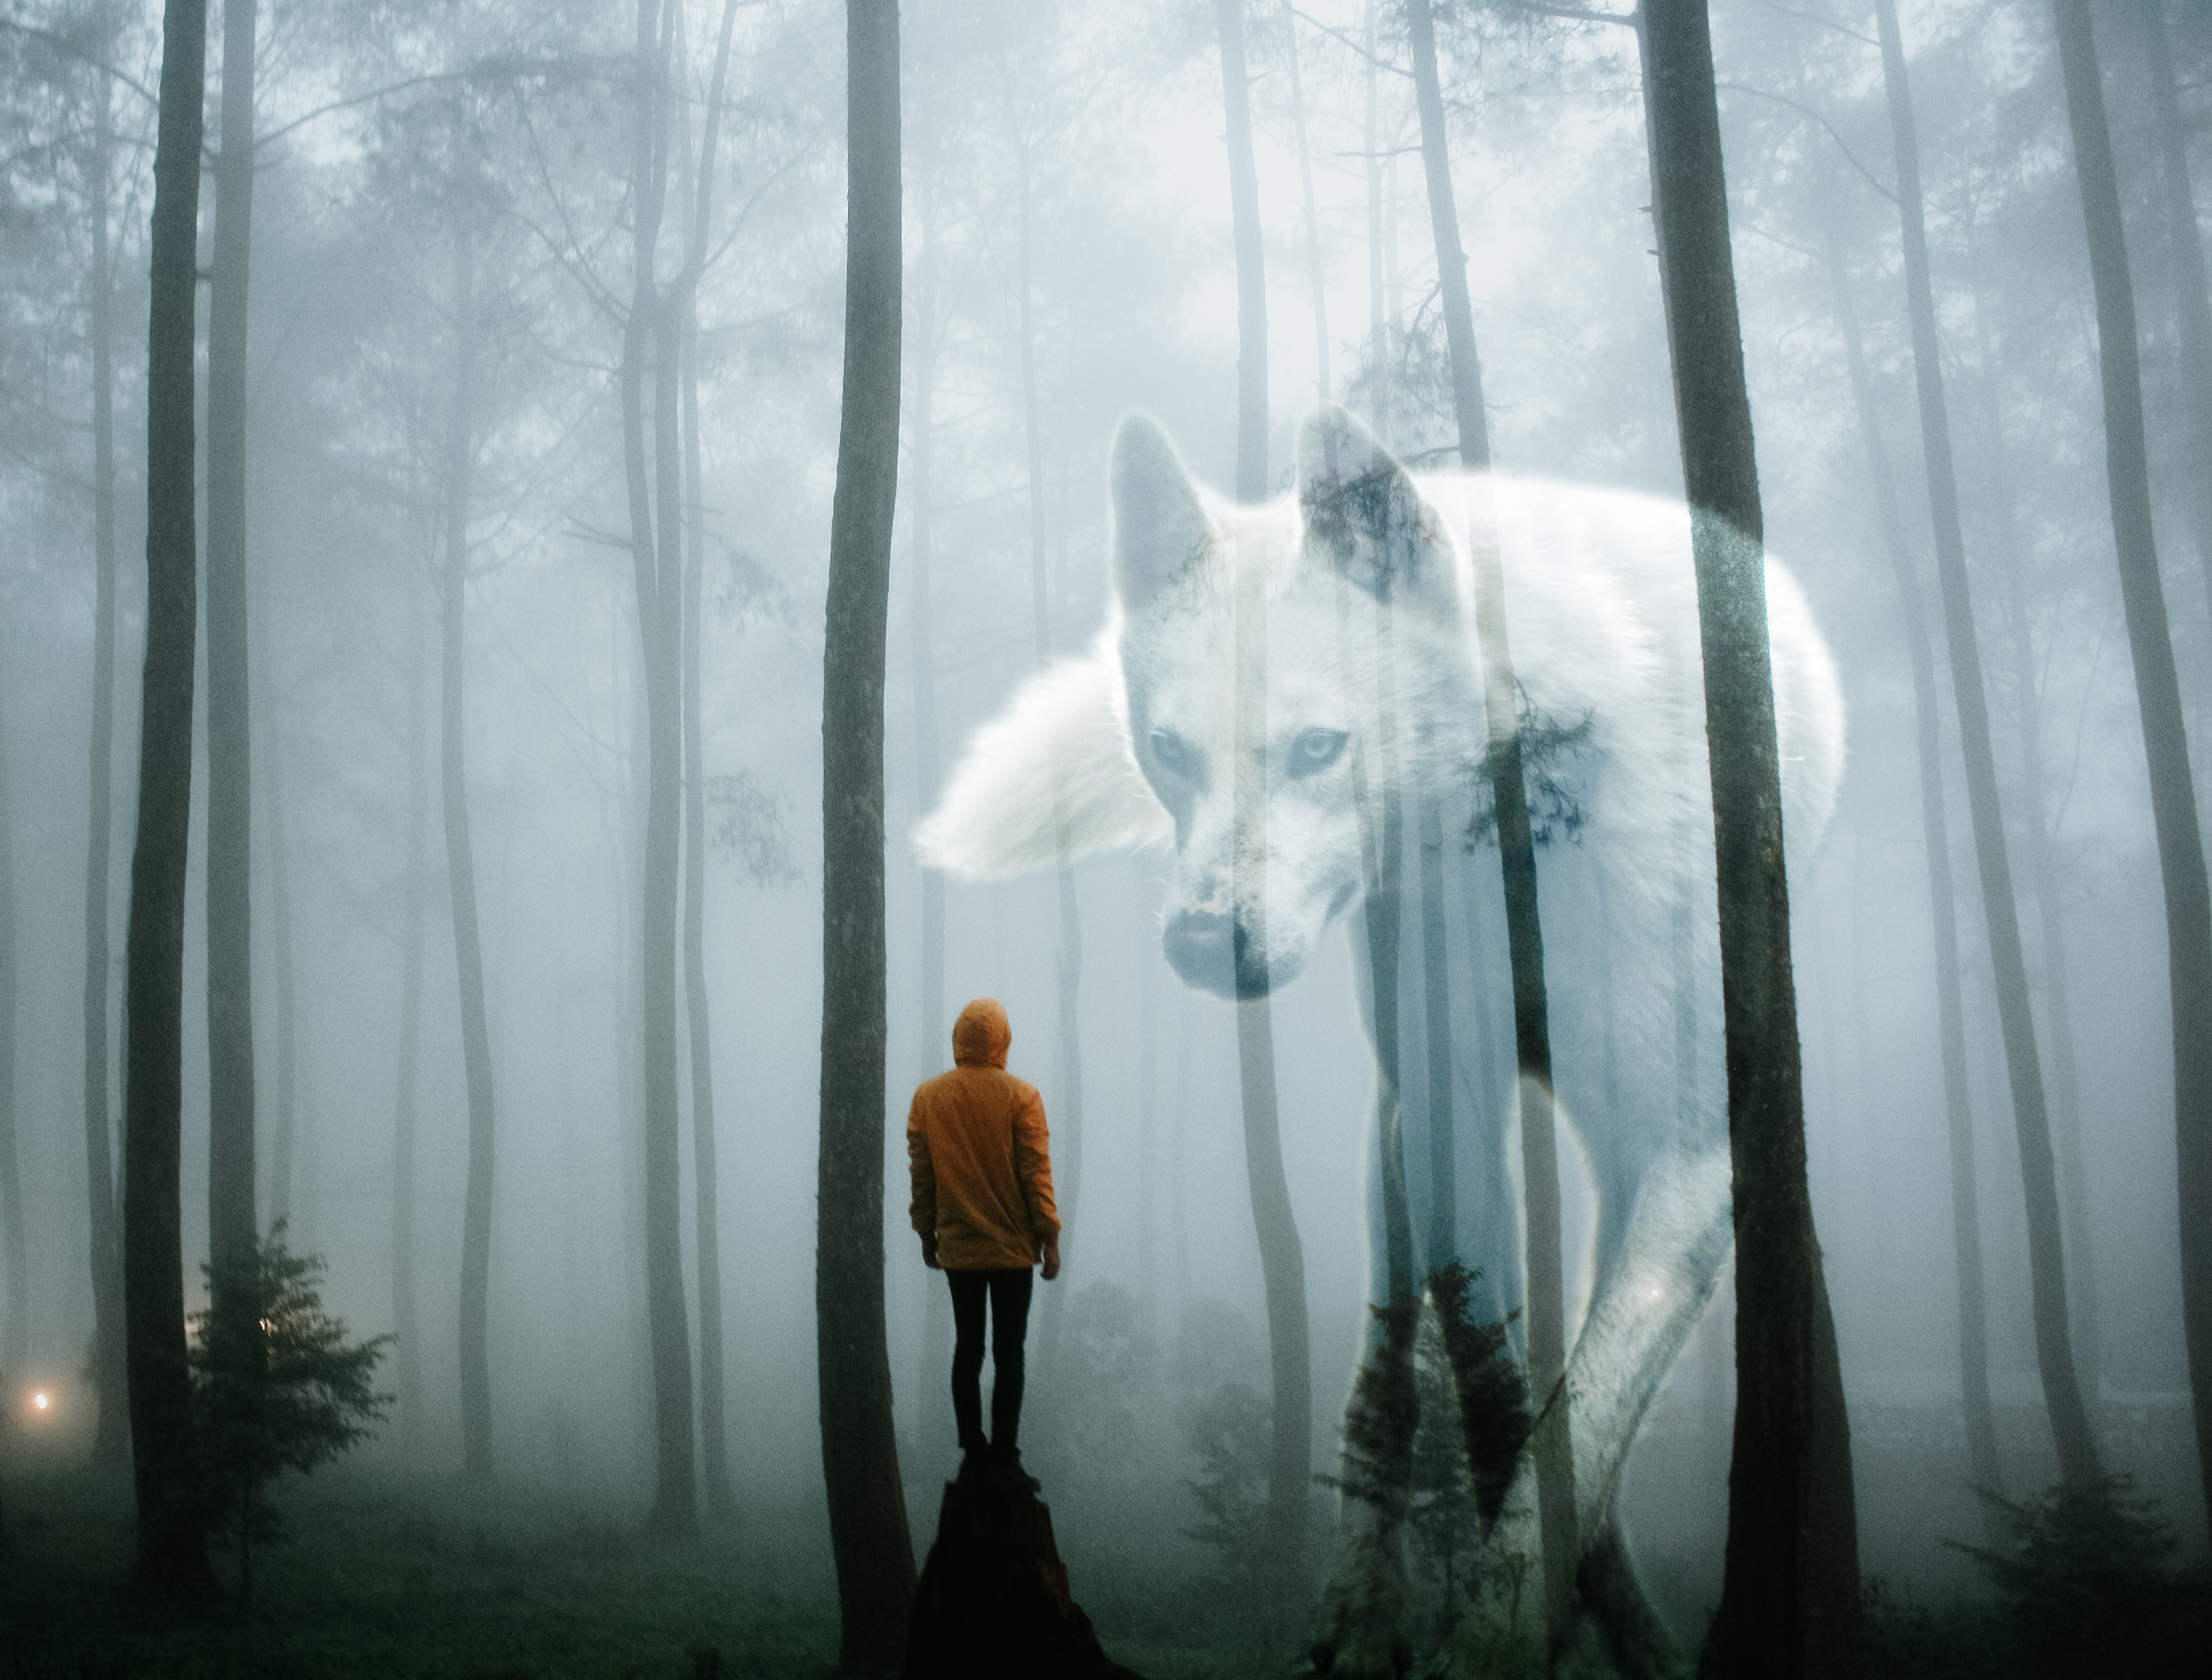 Person in facing wolf in forest